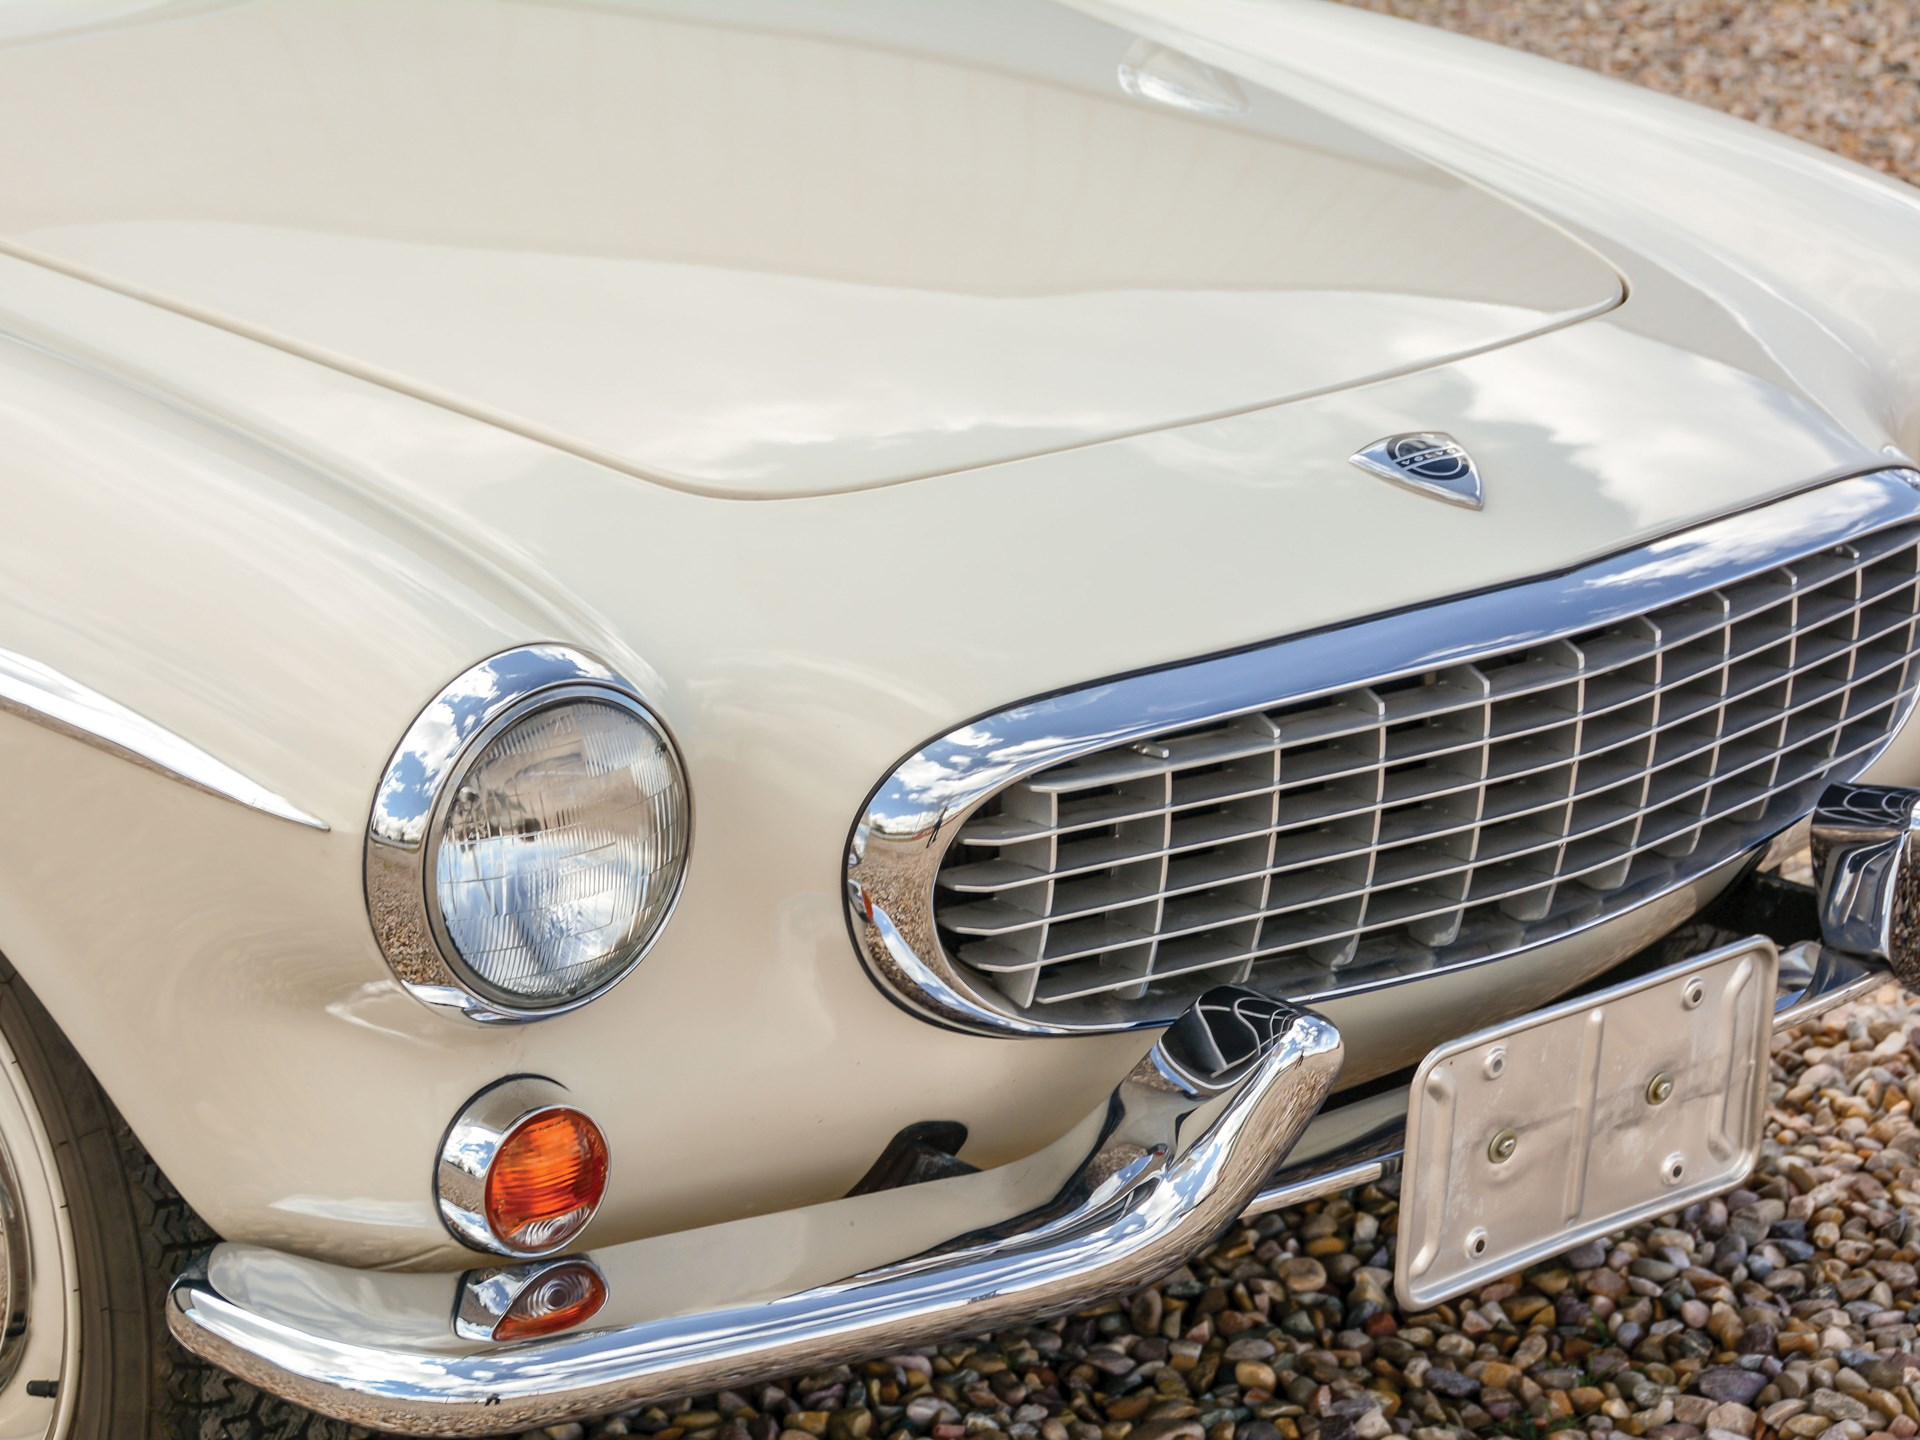 1965 Volvo 1800S grille detail